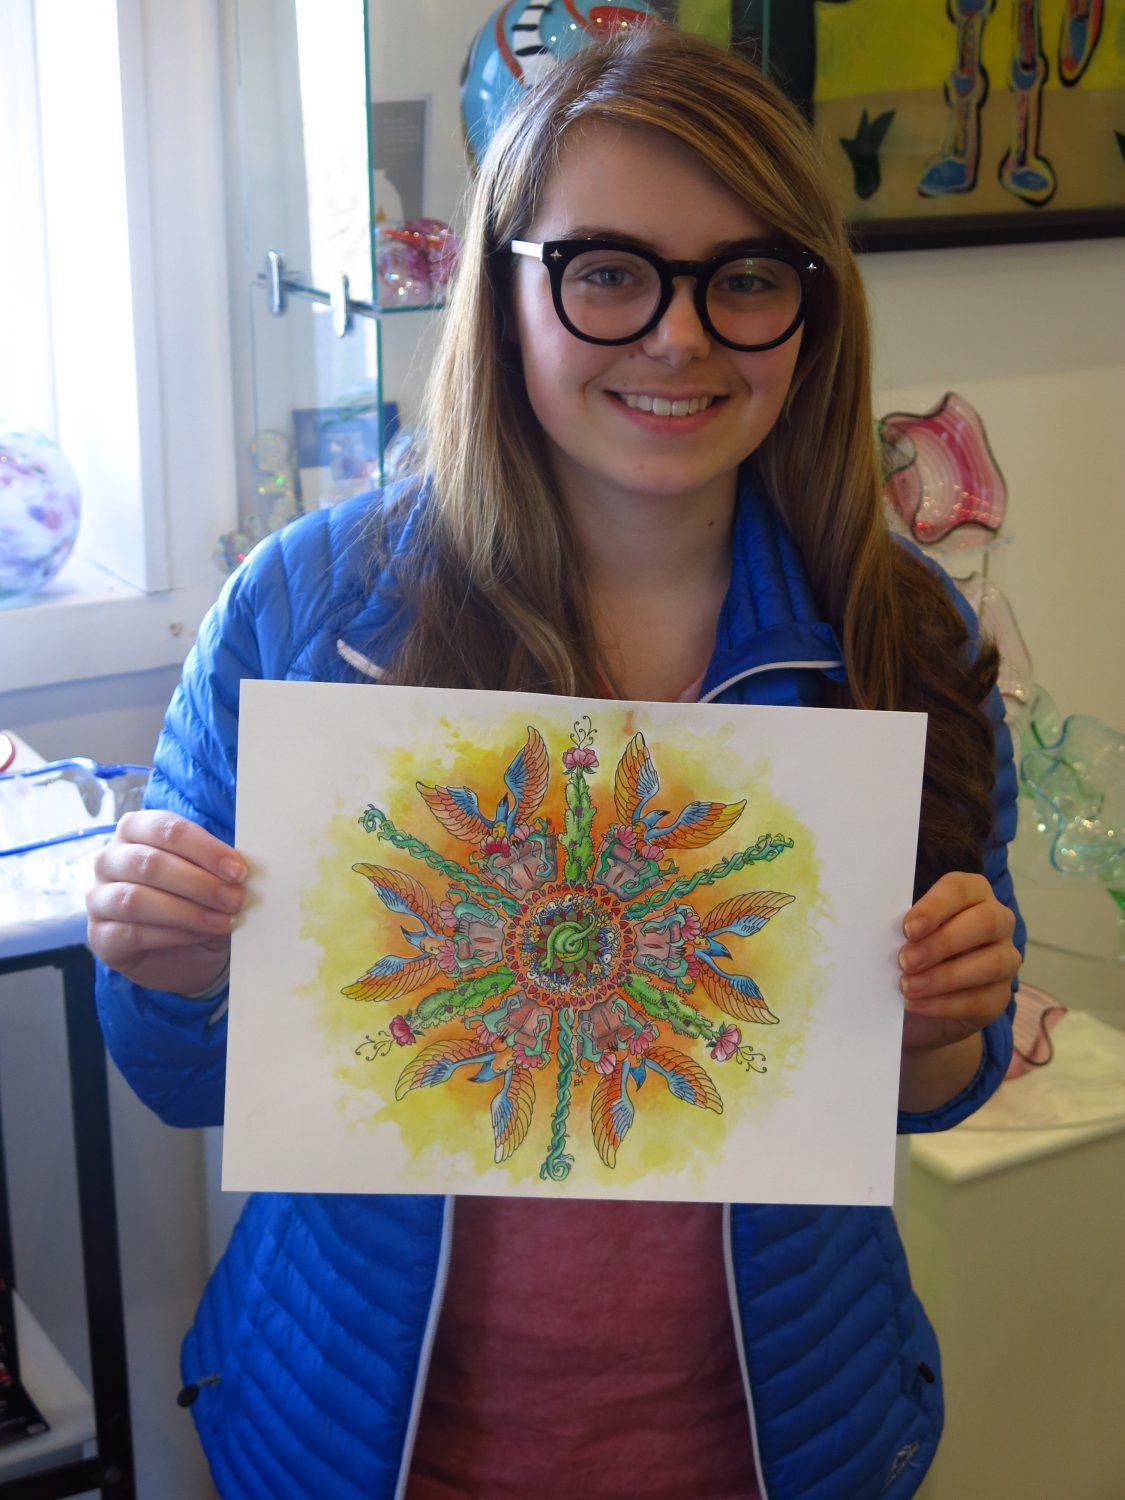 Emma poses with her finished mandala